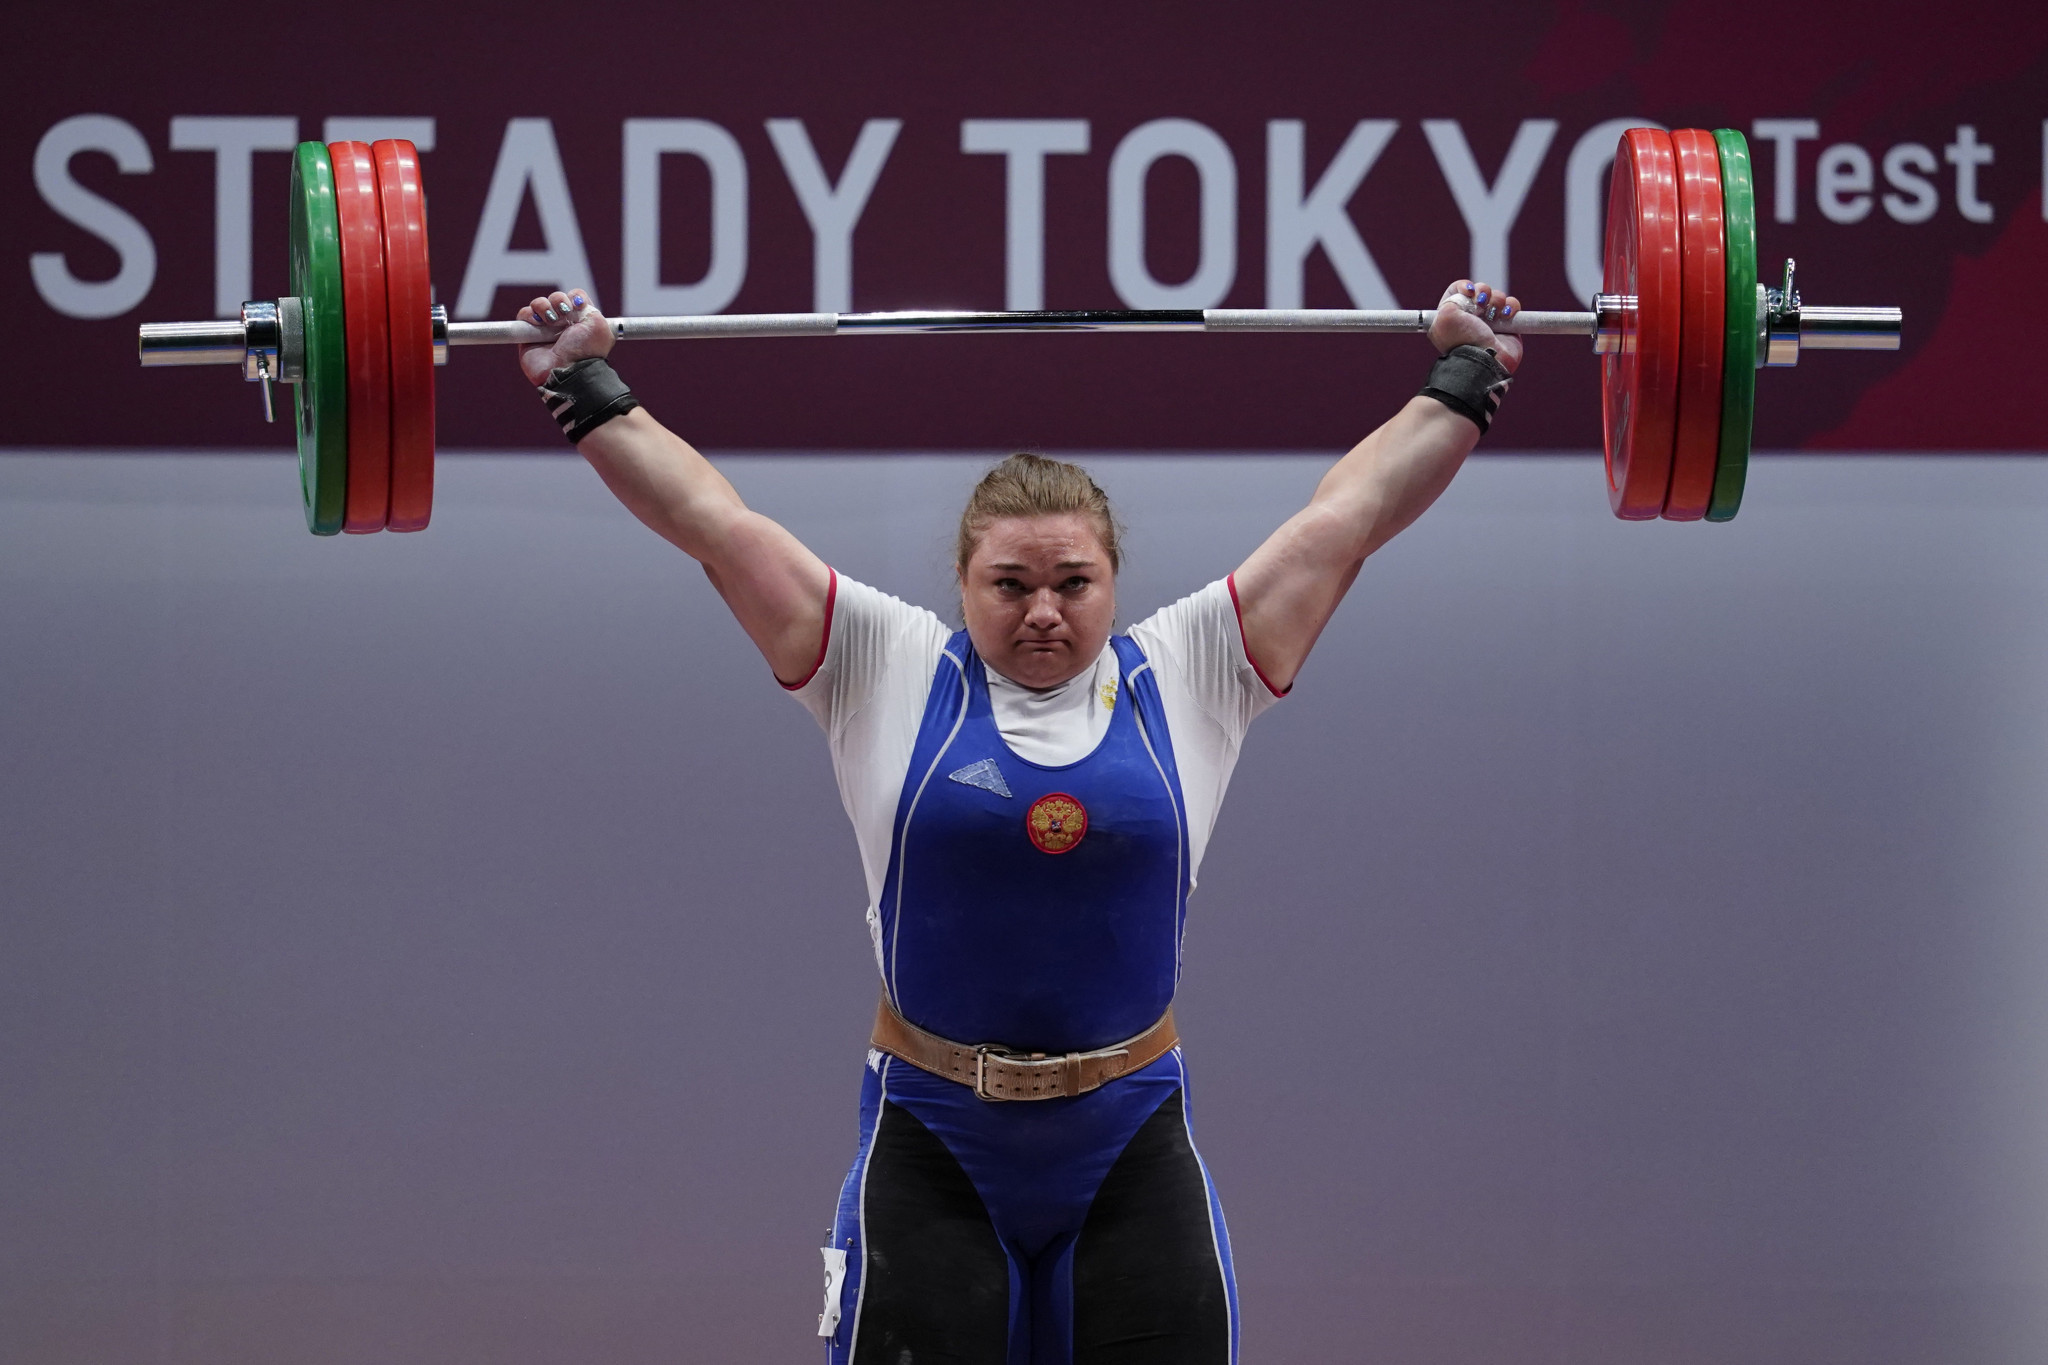 Tatiana Kashirina has been provisionally suspended on suspicion of committing a doping offence ©Getty Images